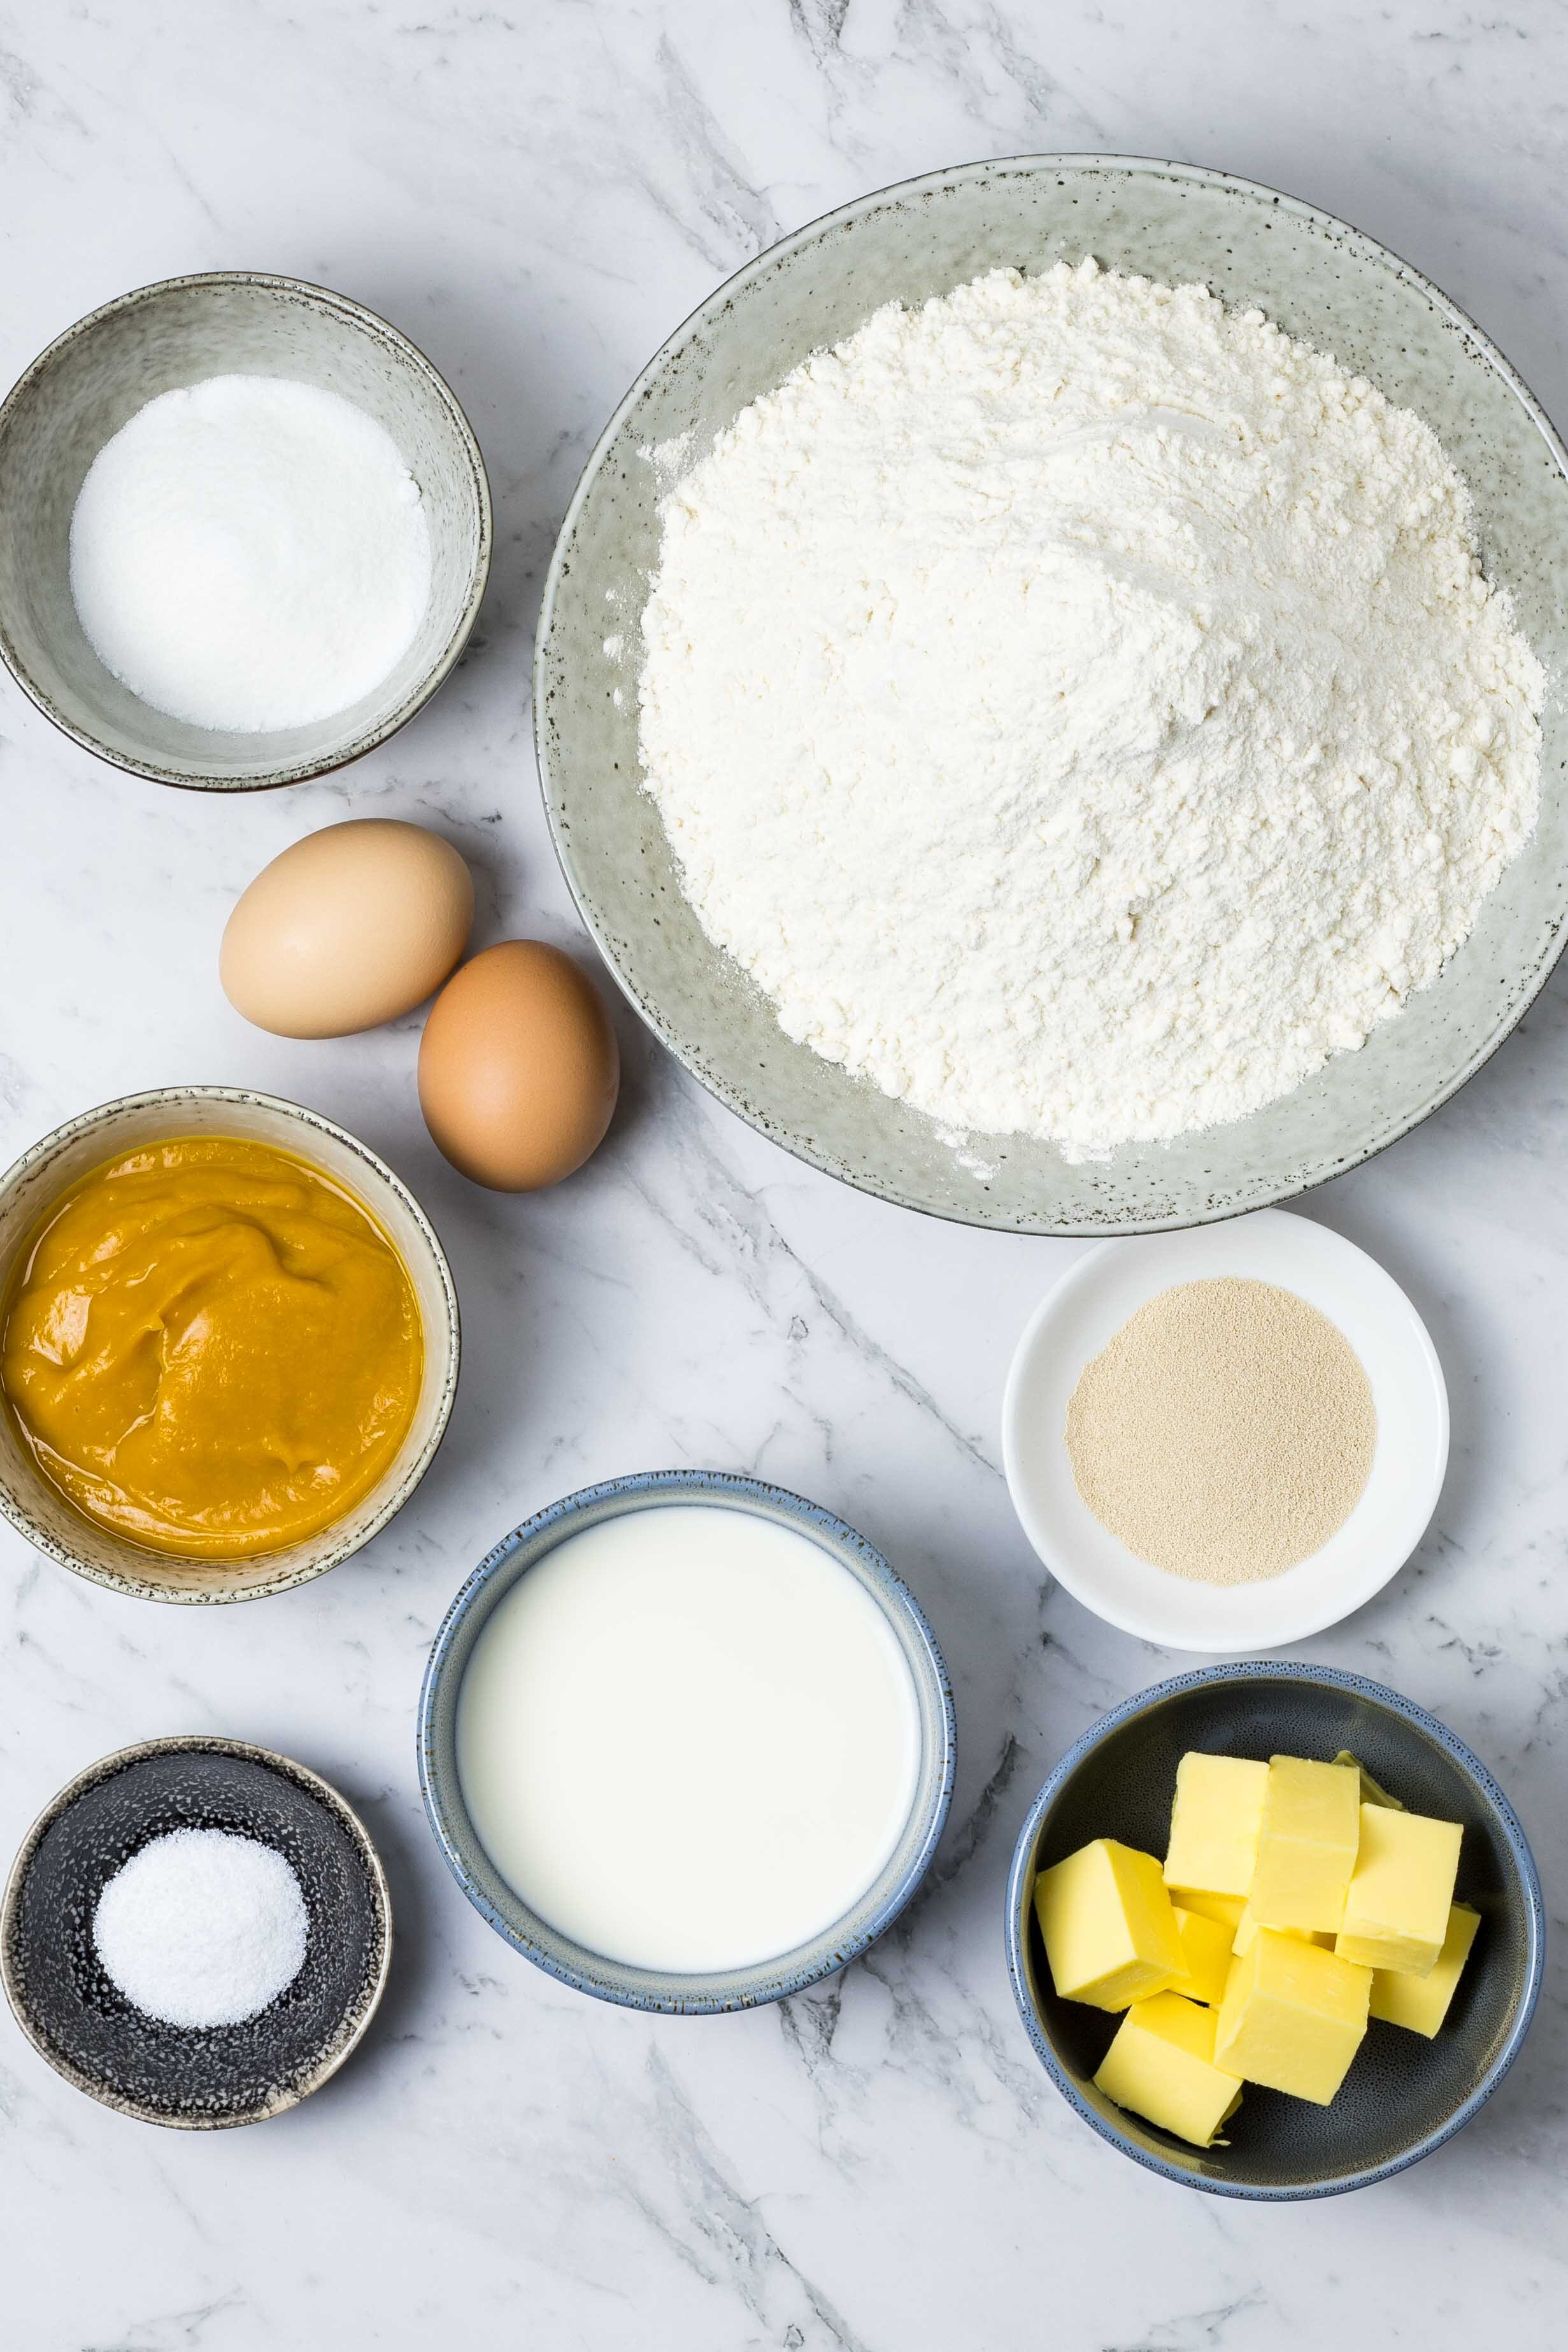 Ingredients for pumpkin dinner rolls: flour, yeast, butter, milk, salt, pumpkin puree, eggs and sugar